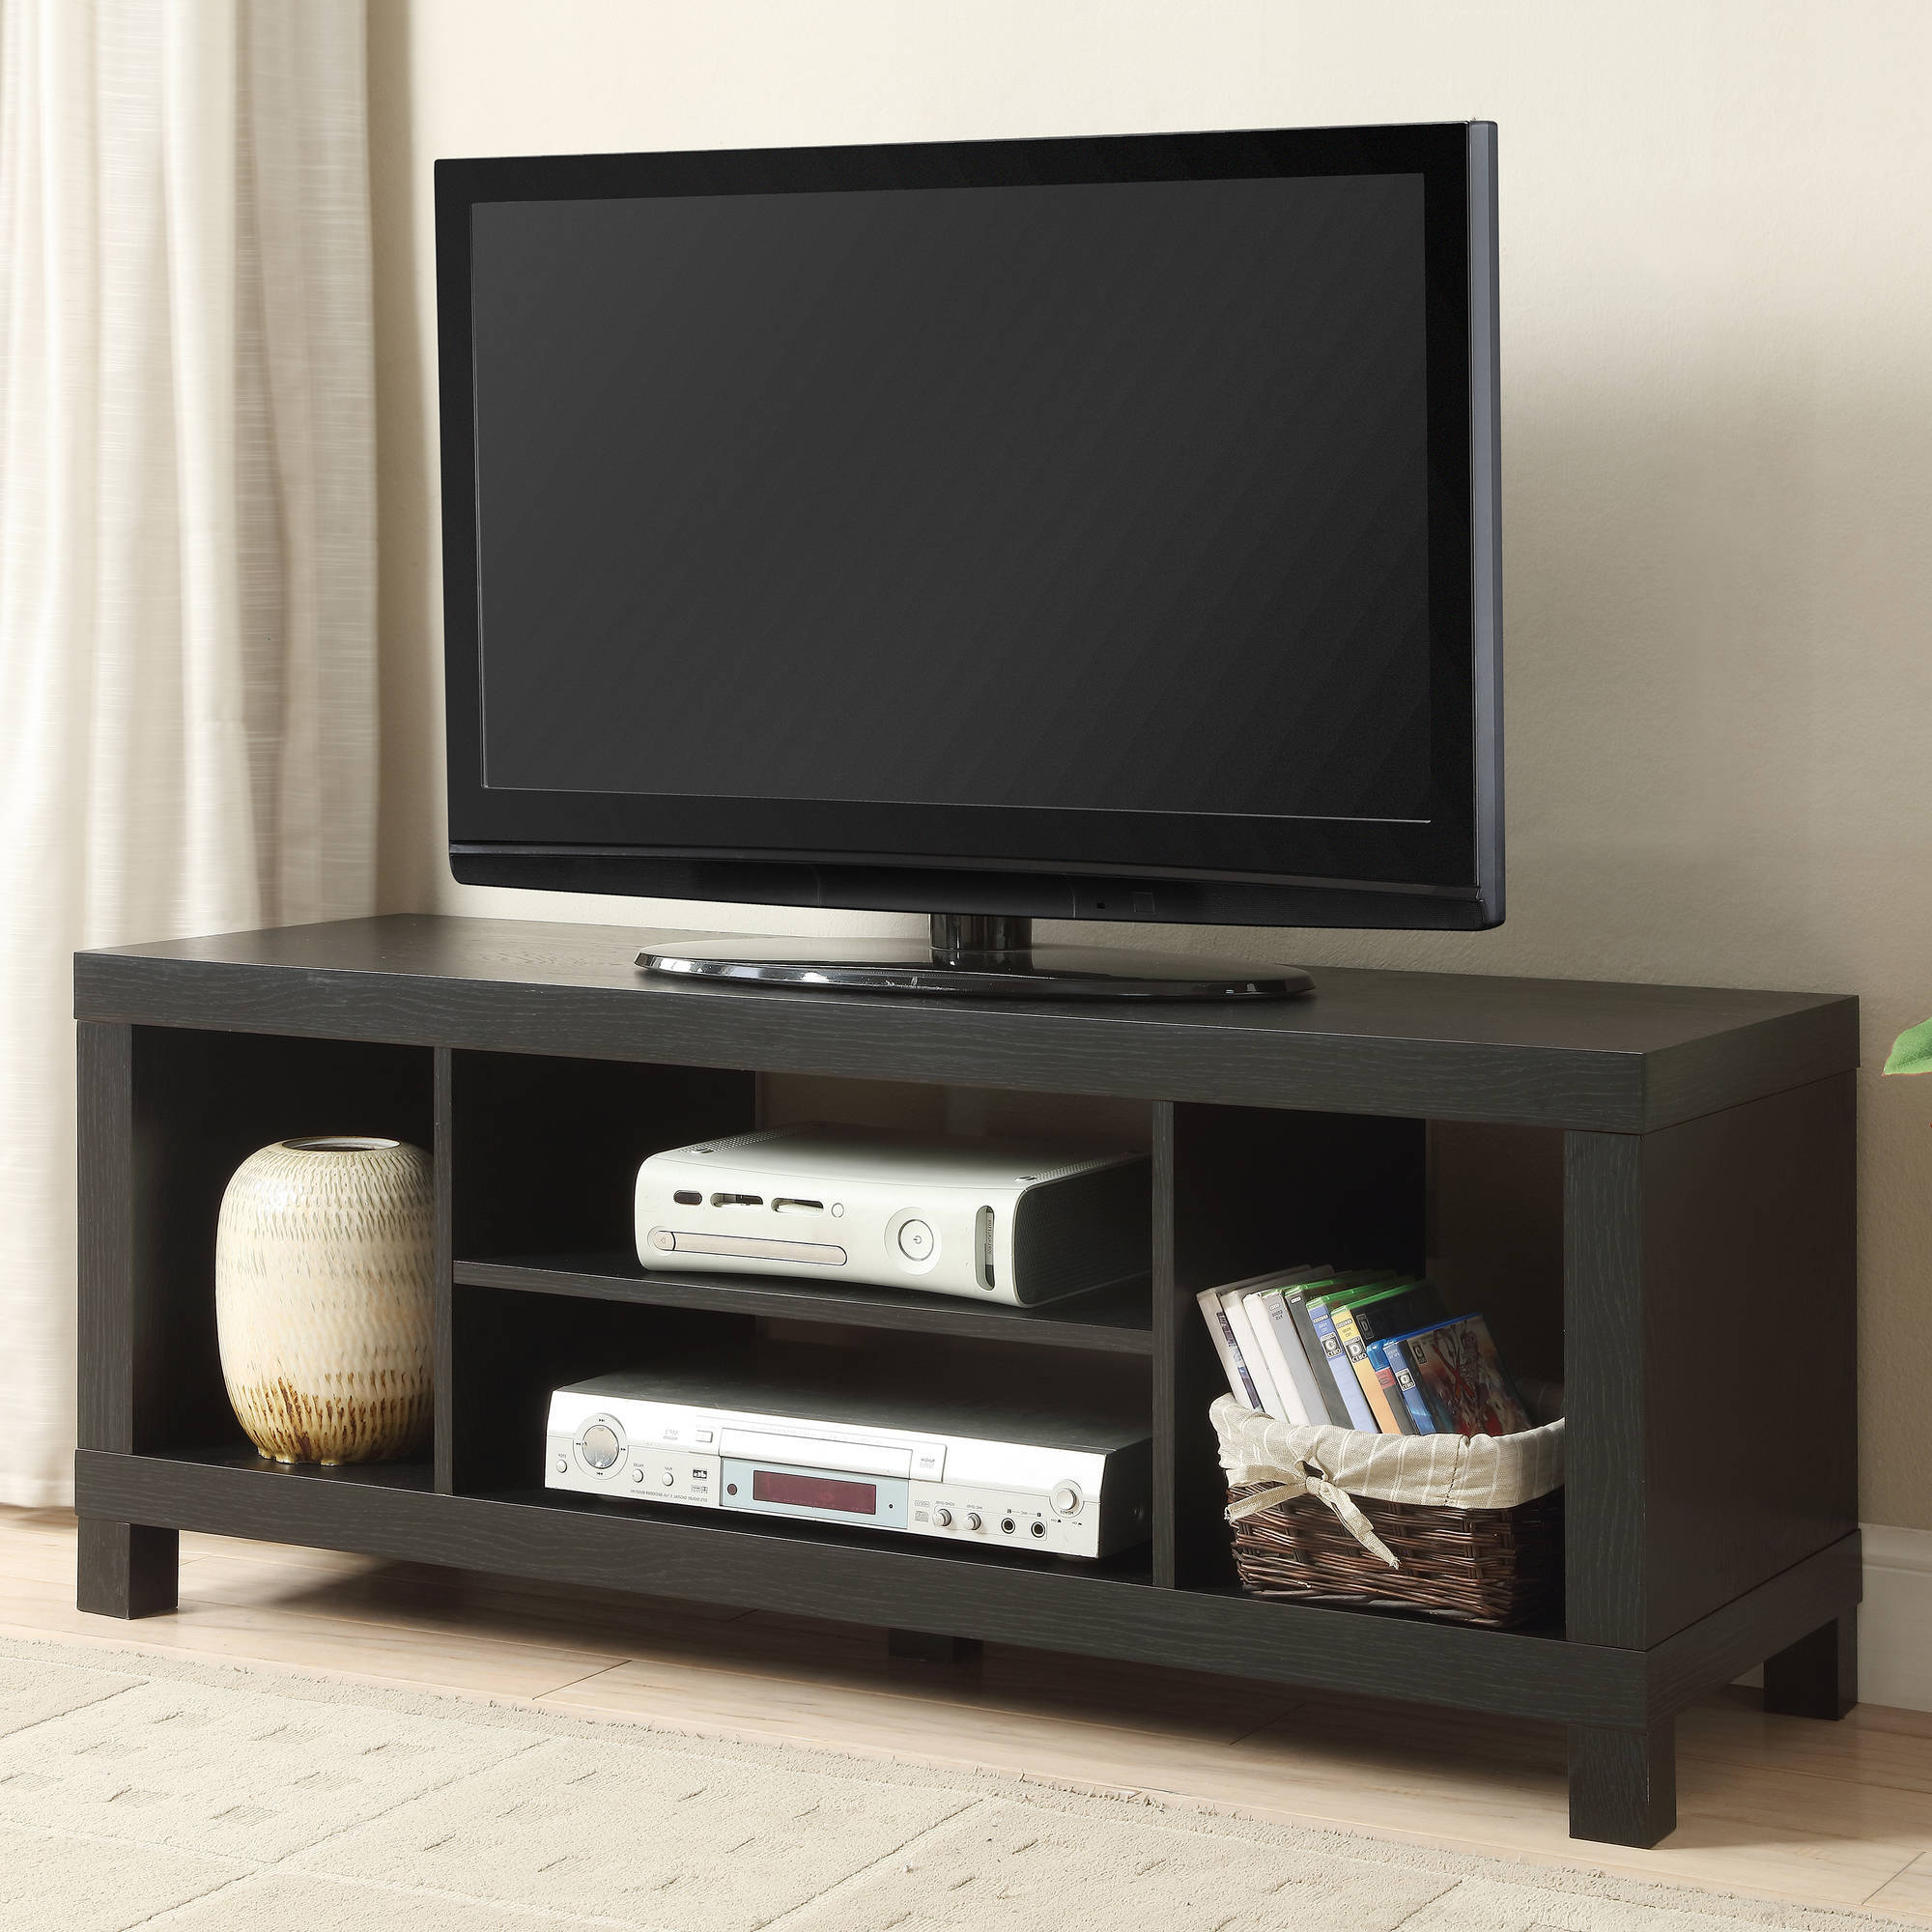 """Mainstays Tv Stand For Tvs Up To 42"""", Multiple Colors – Walmart Within Well Liked Contemporary Tv Stands For Flat Screens (View 13 of 20)"""